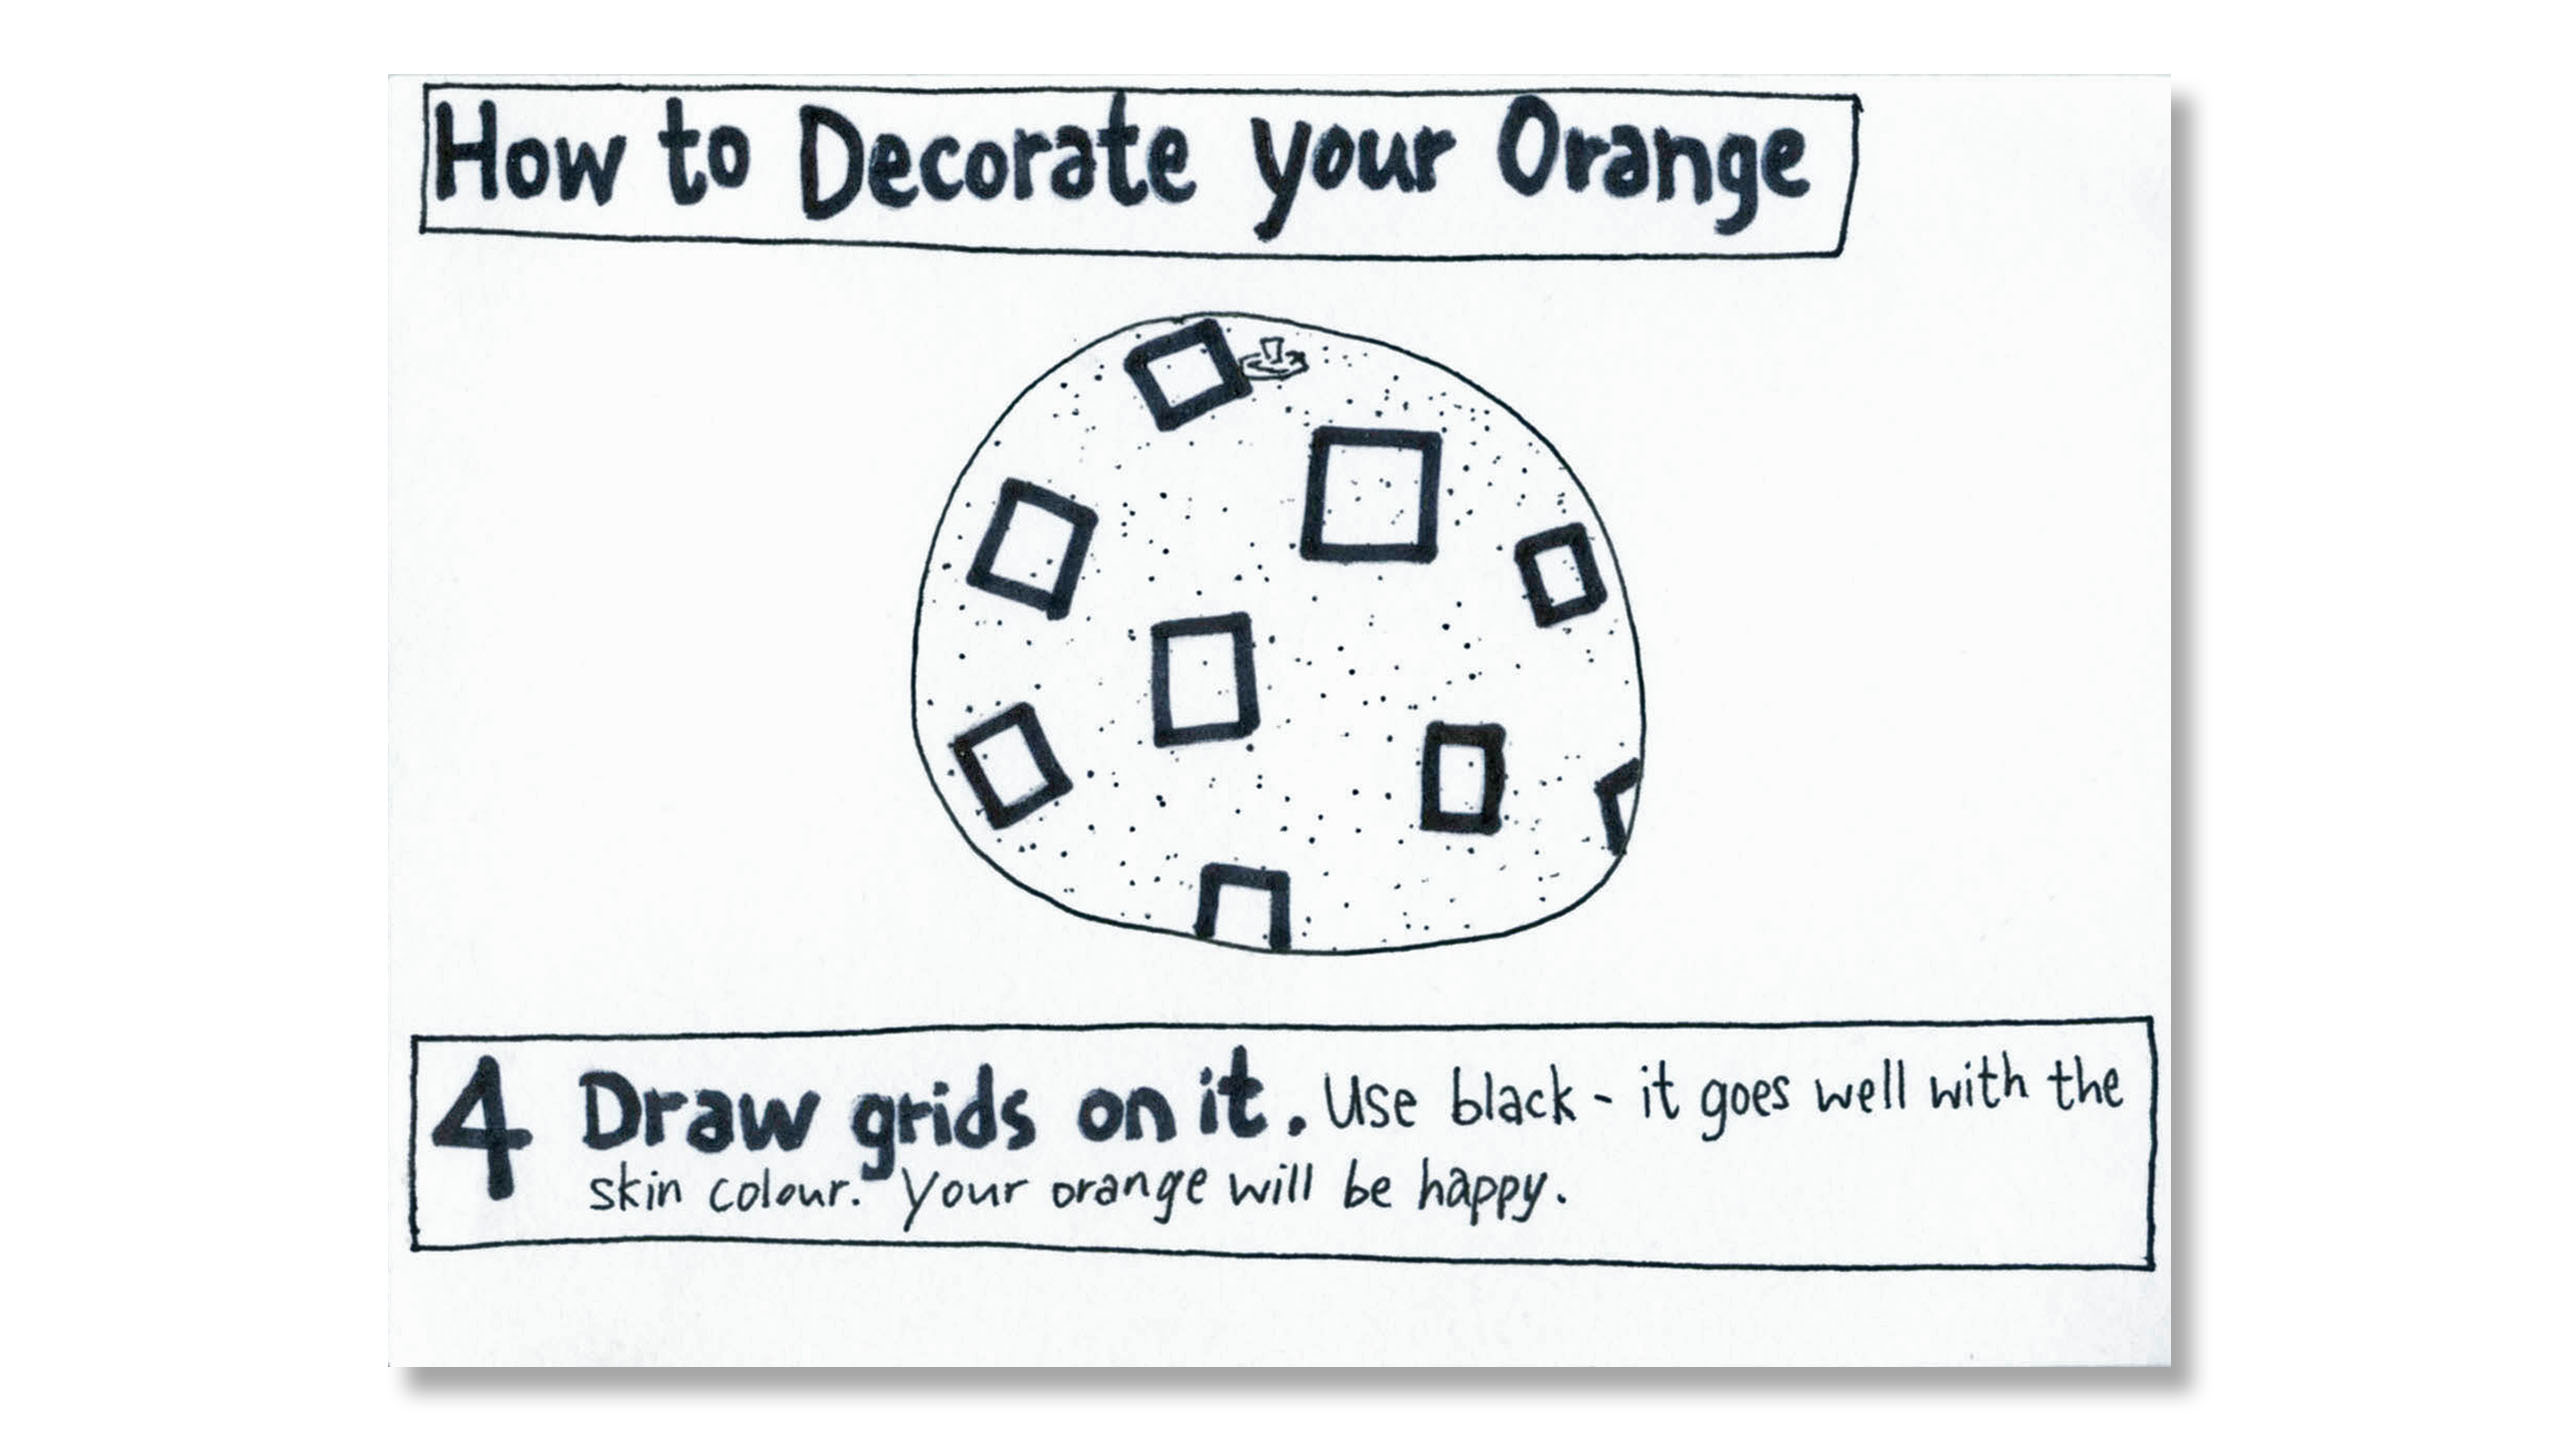 How to Decorate Your Orange